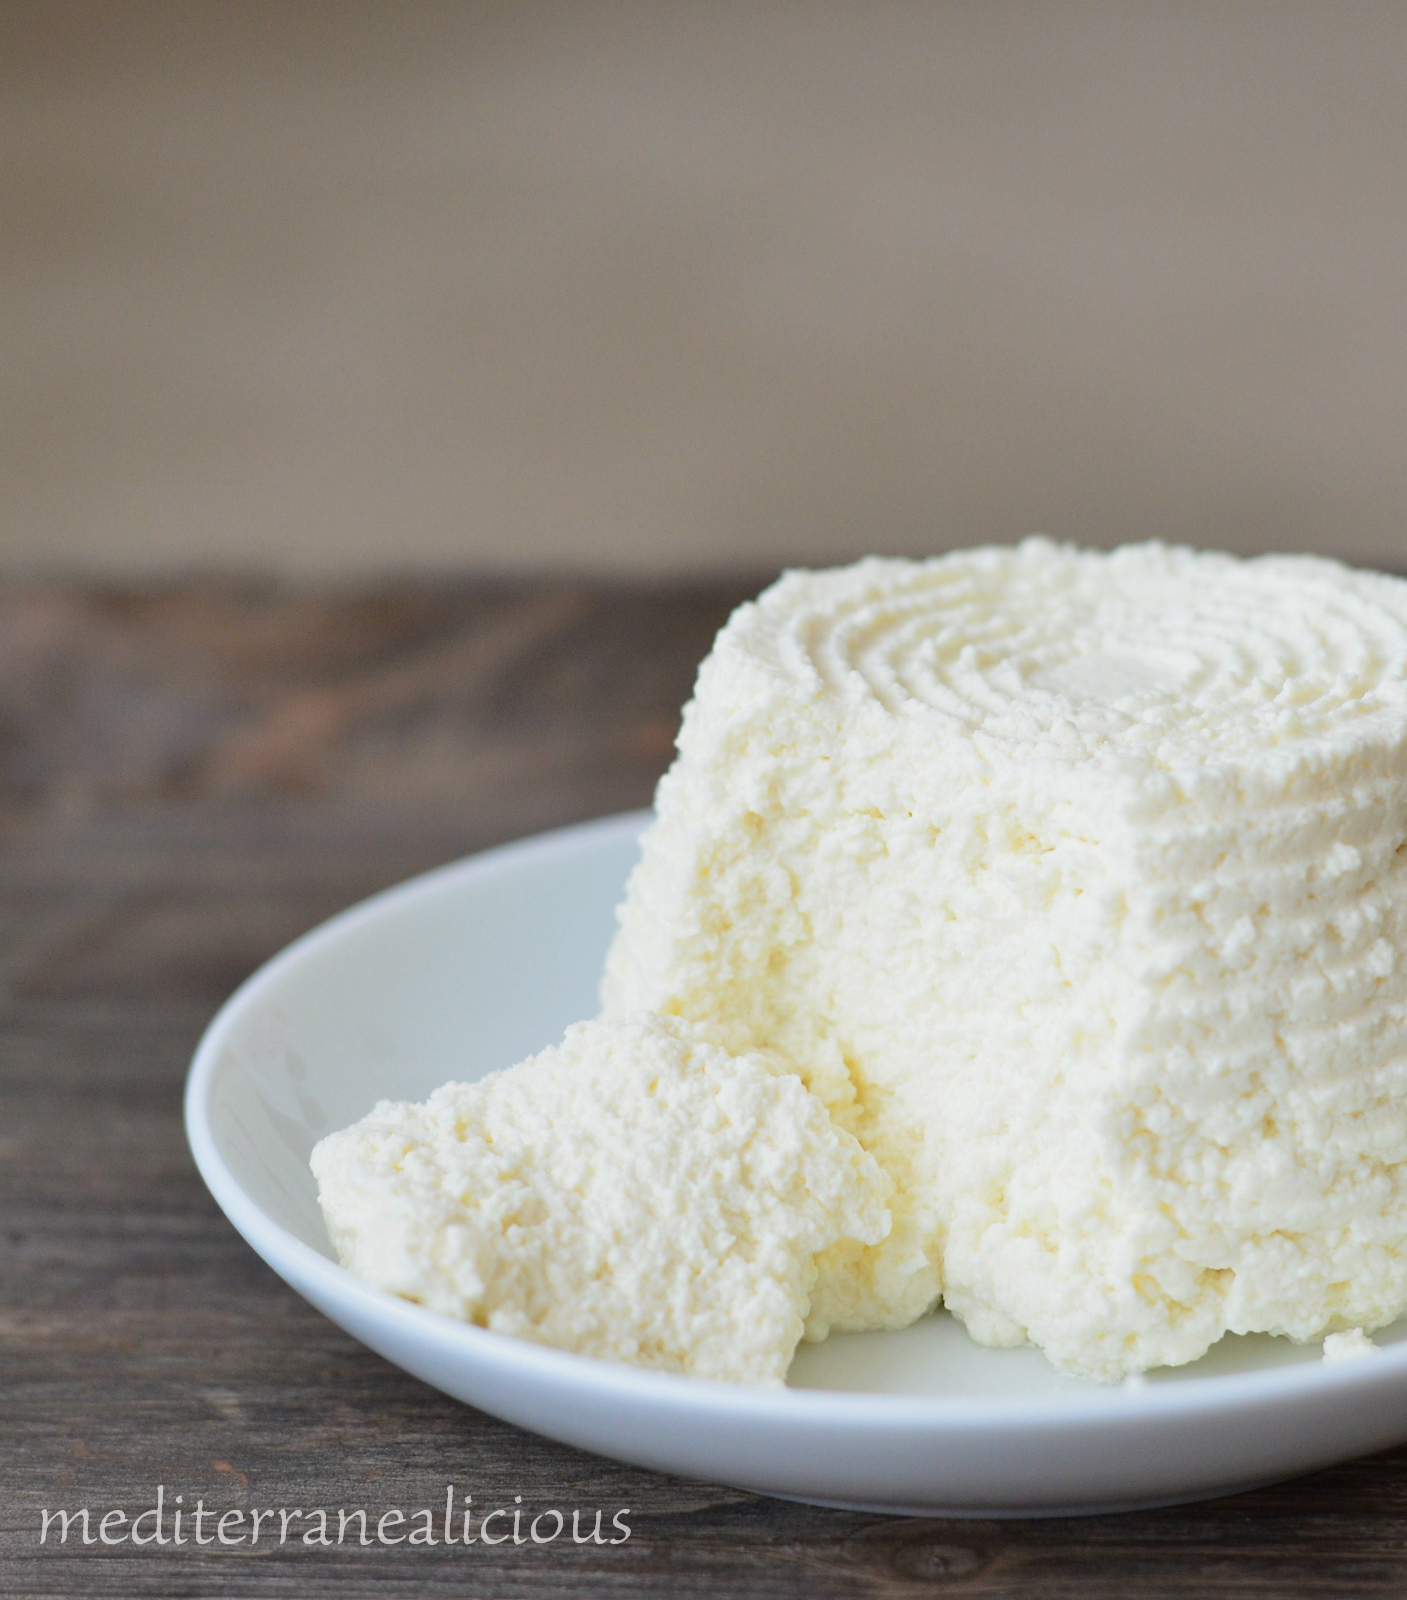 Homemade Ricotta Cheese - Mediterranealicious